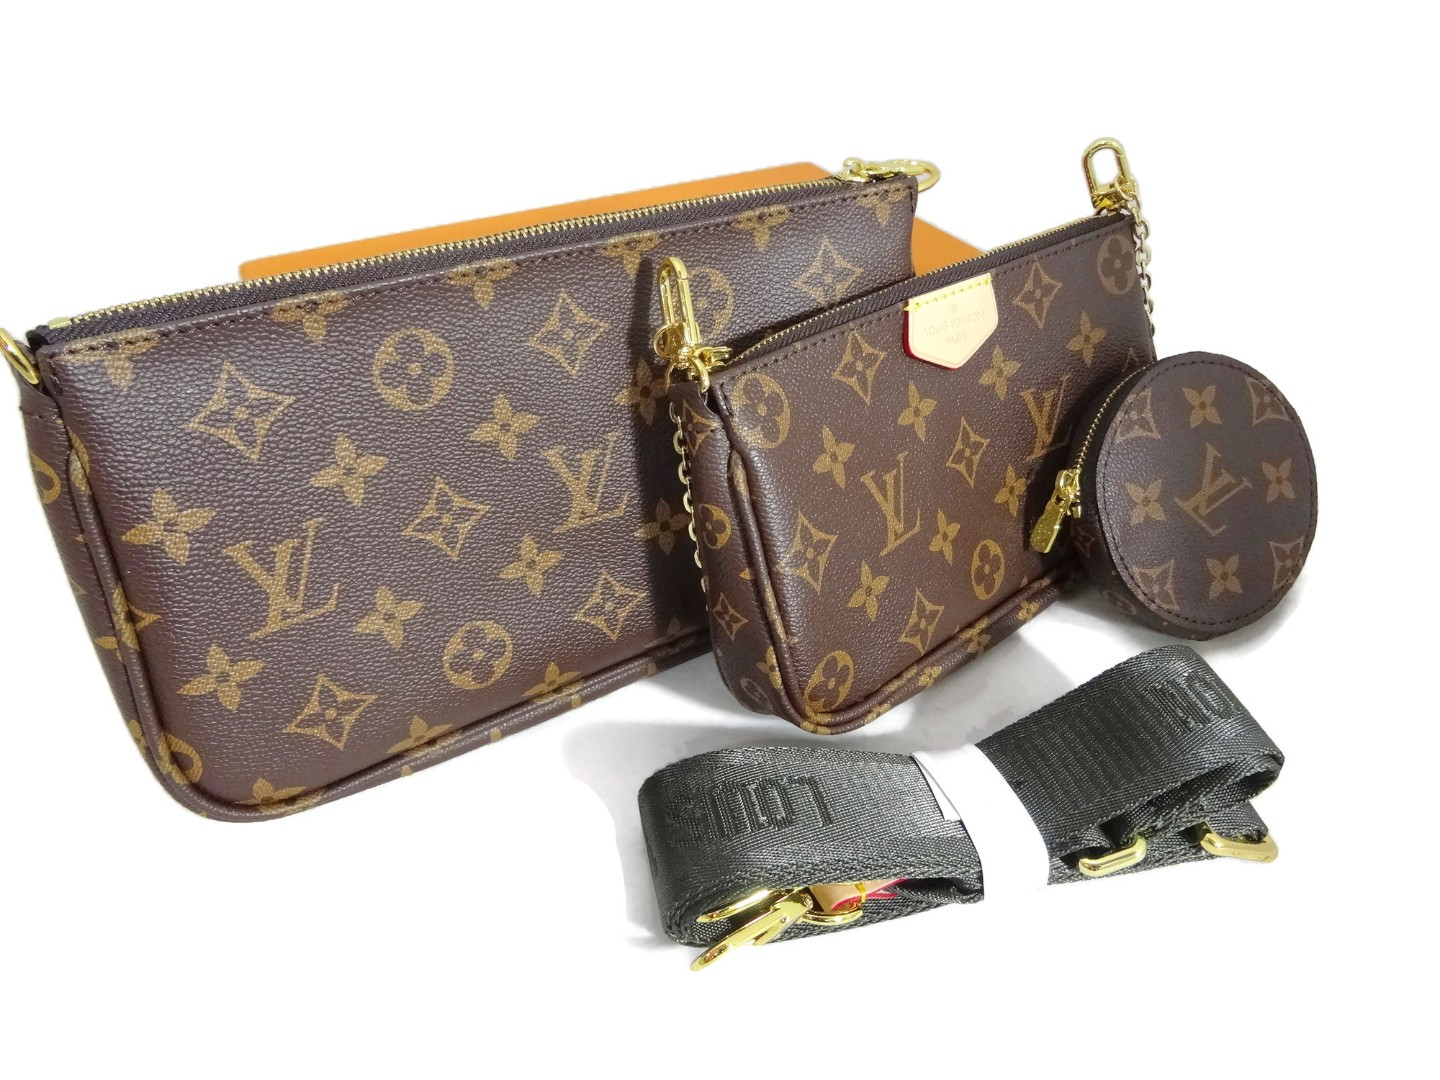 Сумочка Louis Vuitton (Луи Виттон) 44823